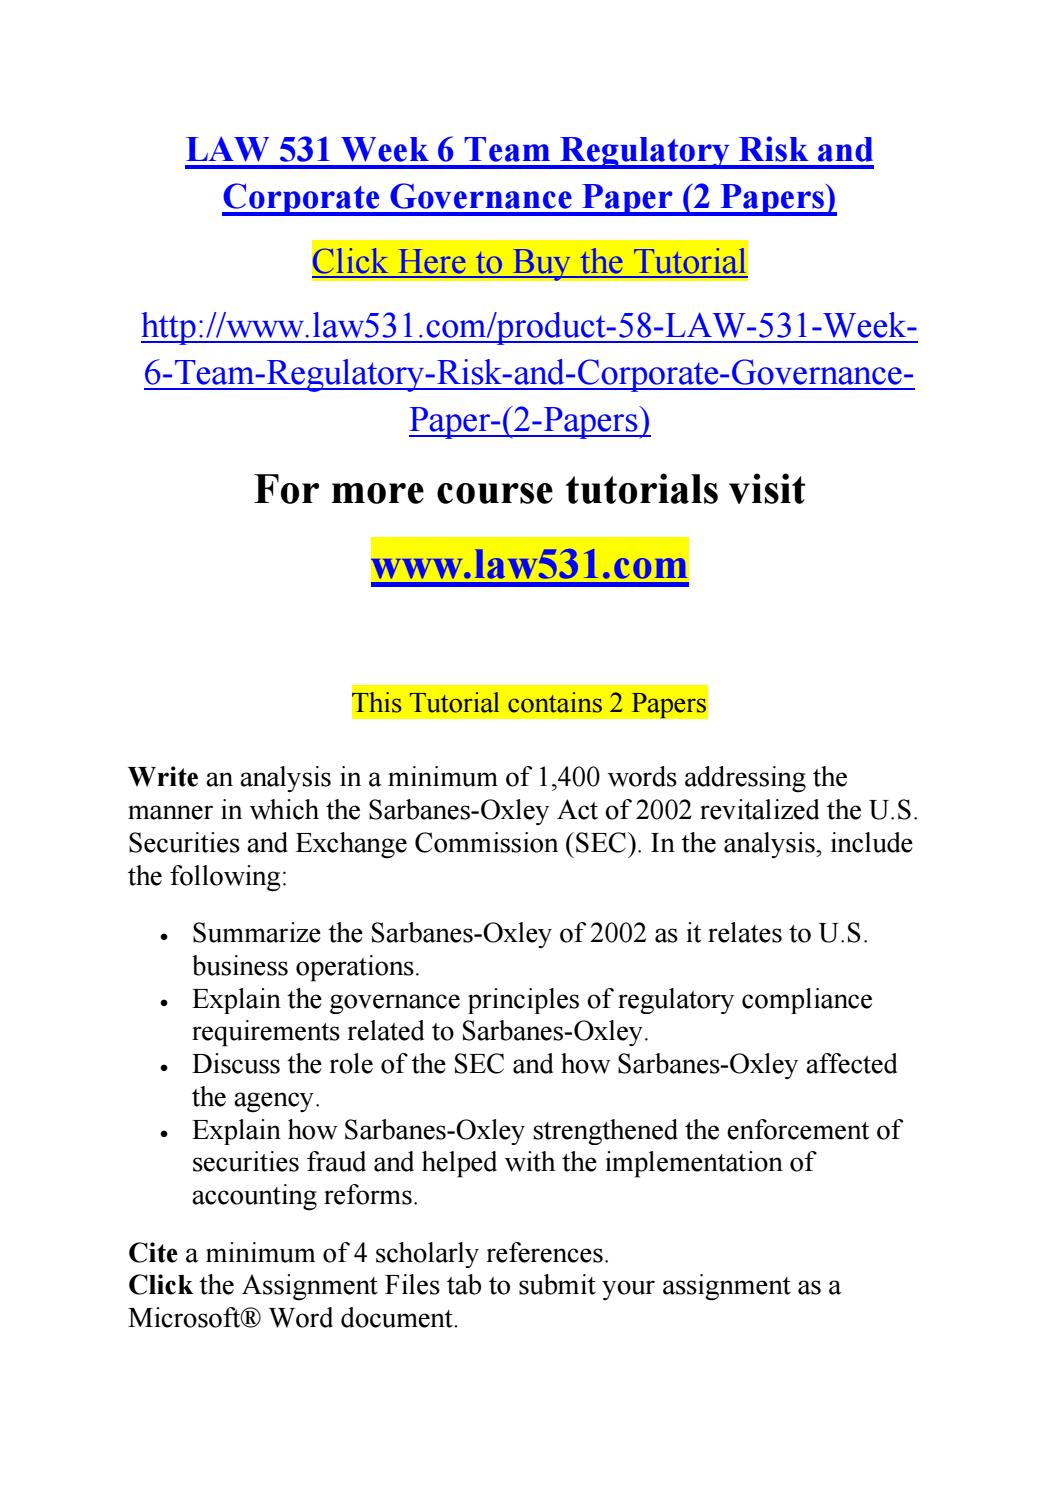 Law 531 Week 6 Team Regulatory Risk And Corporate Governance Paper